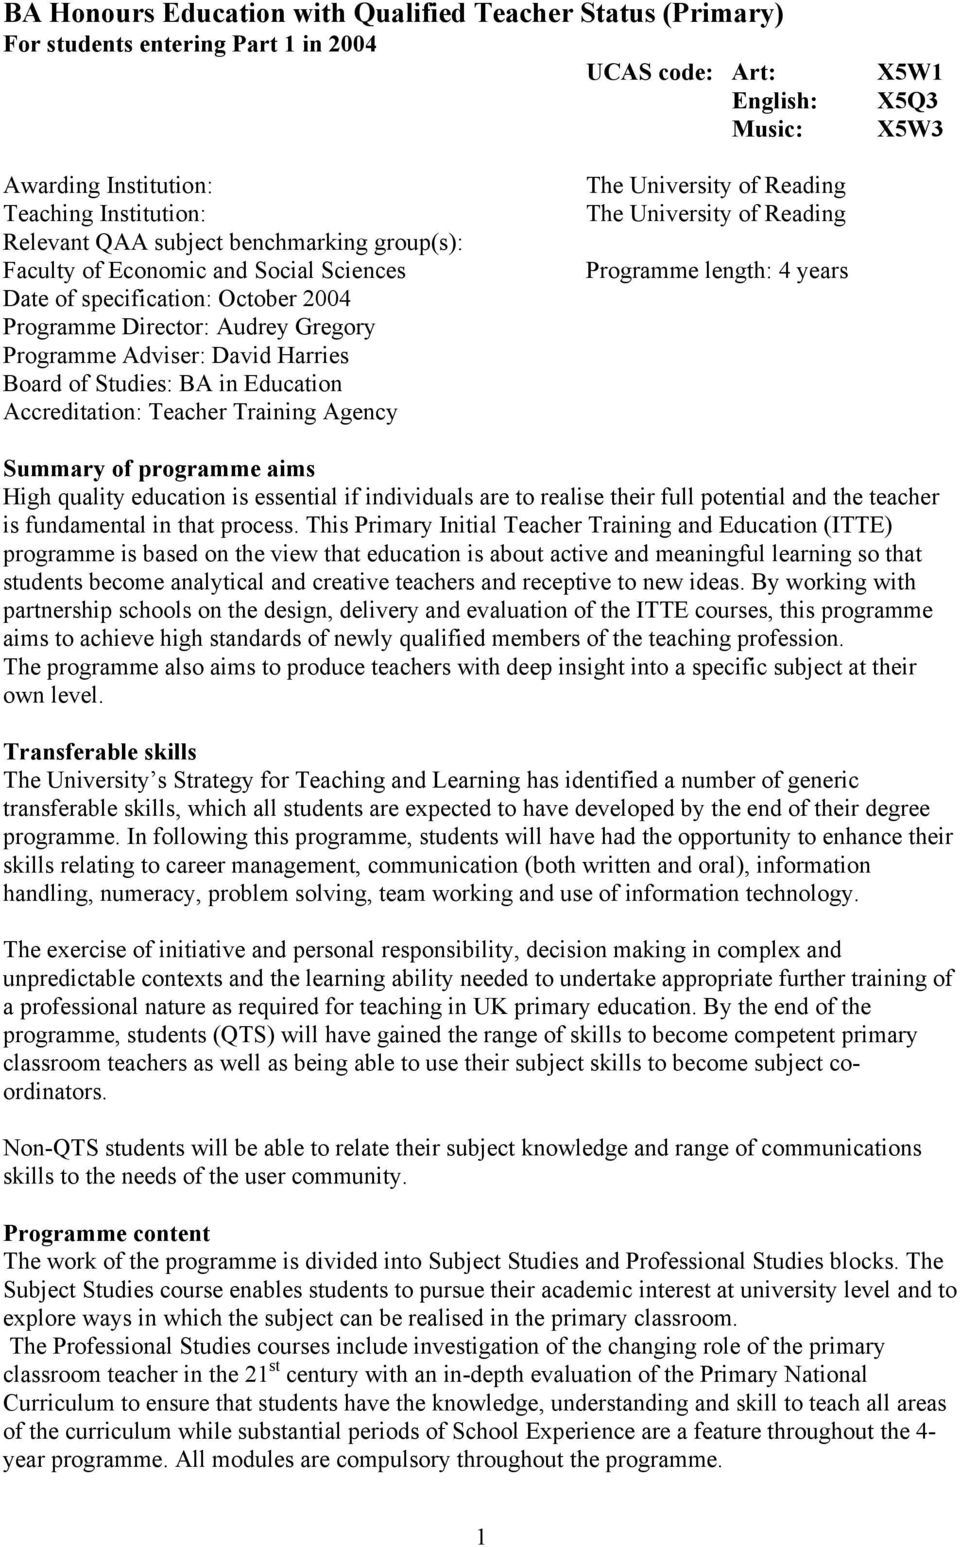 in Education Accreditation: Teacher Training Agency The University of Reading The University of Reading Programme length: 4 years Summary of programme aims High quality education is essential if